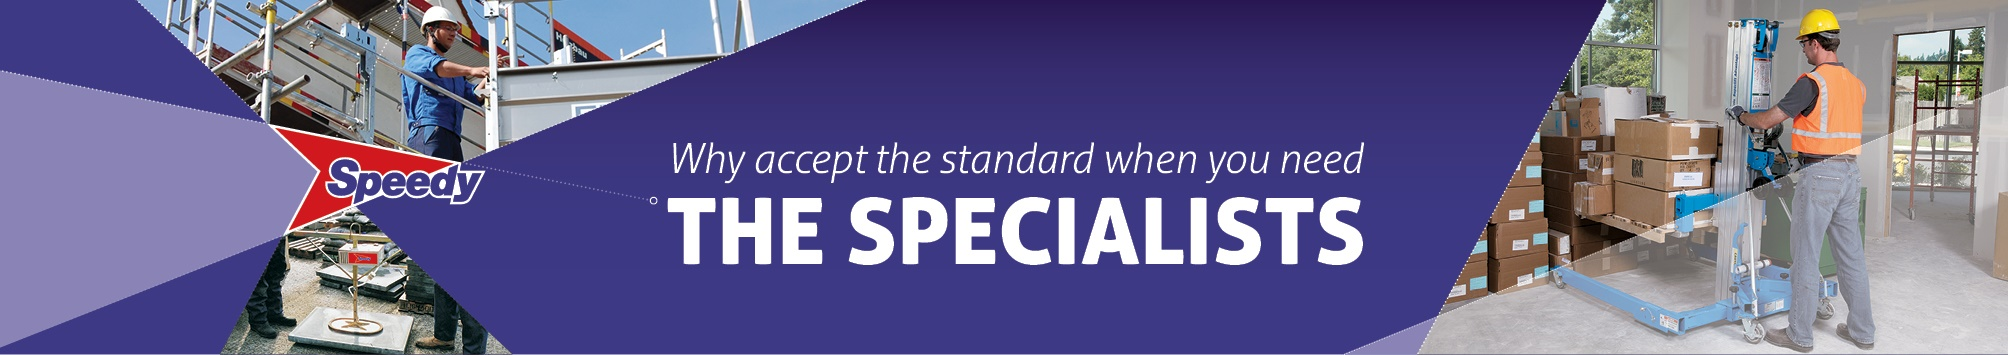 Specialists Landing Page Header.jpg